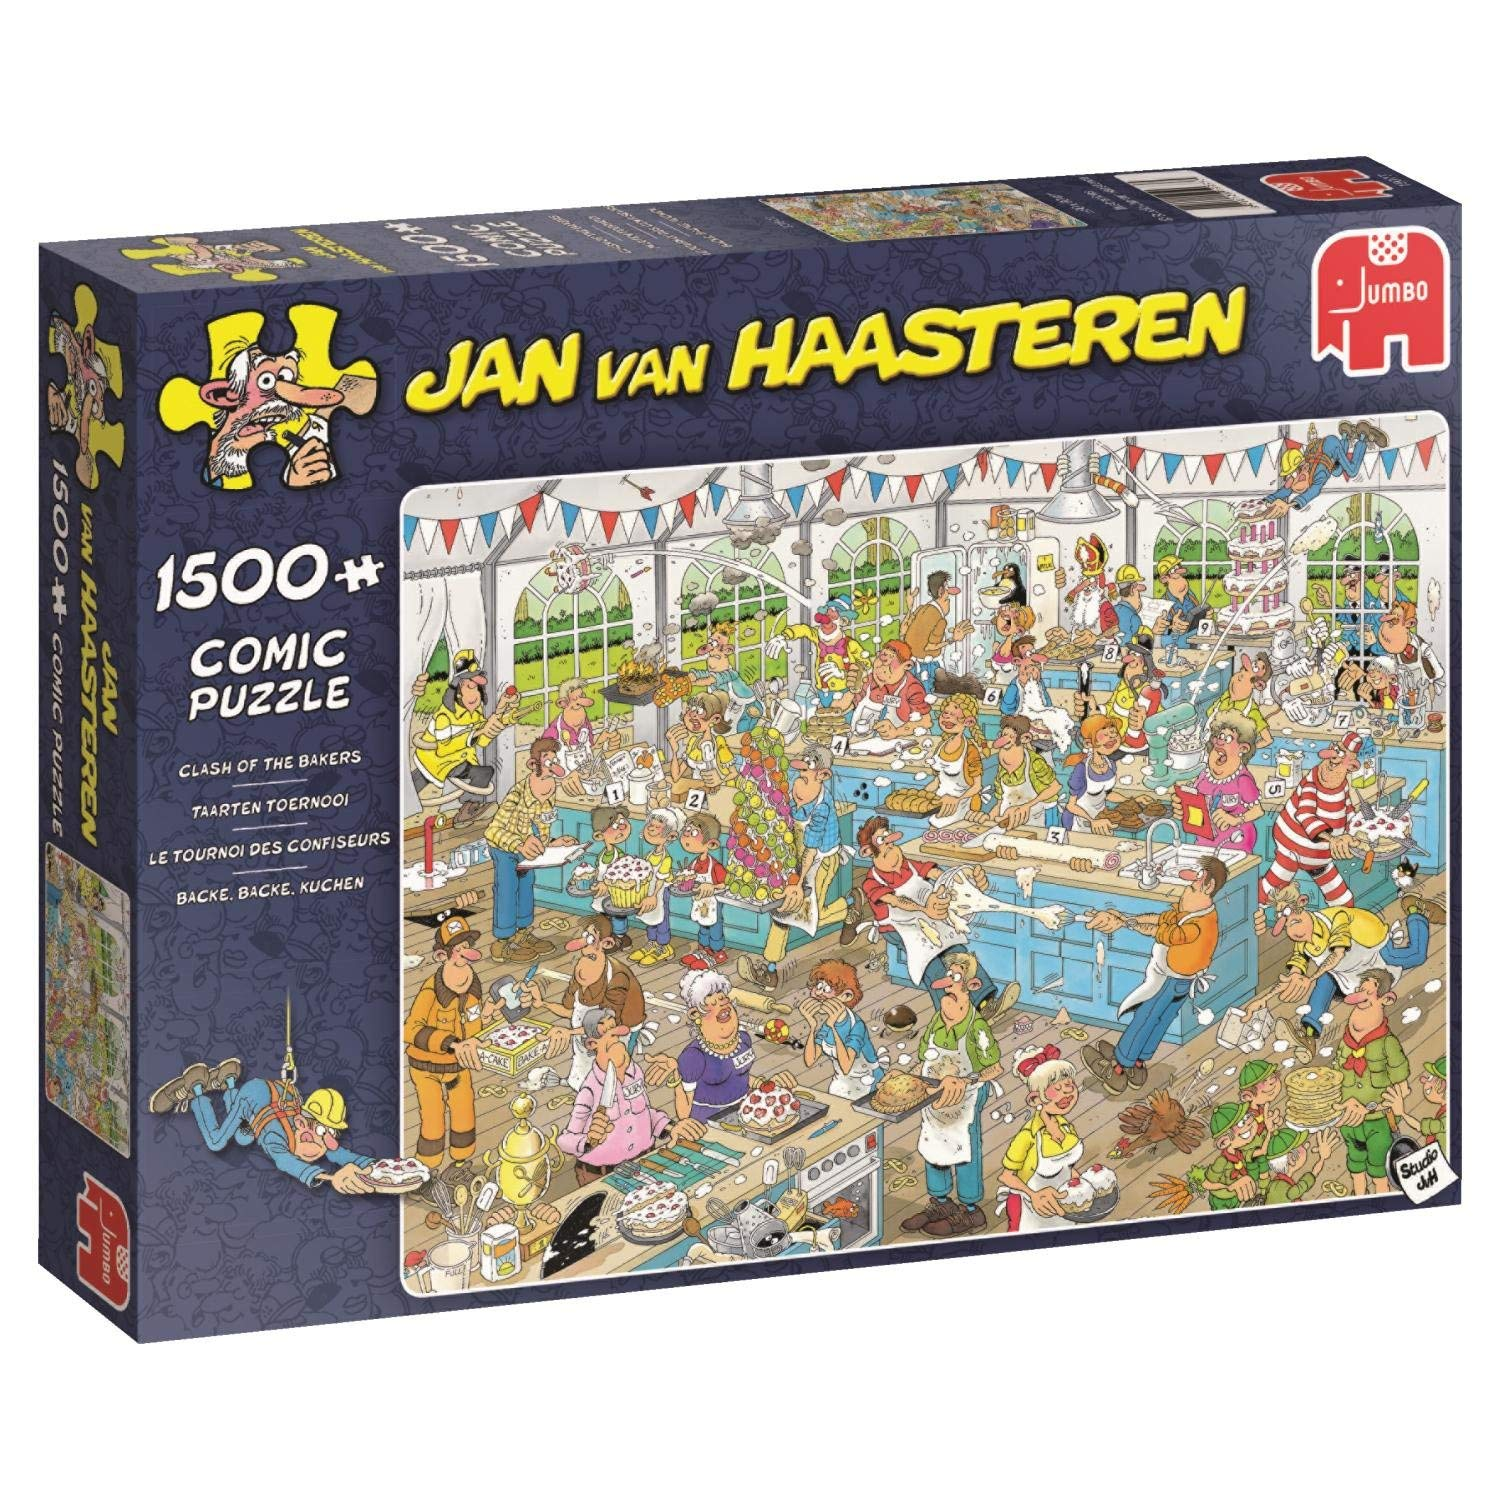 Jan van Haasteren, Clash Of The Bakers, 1500pc